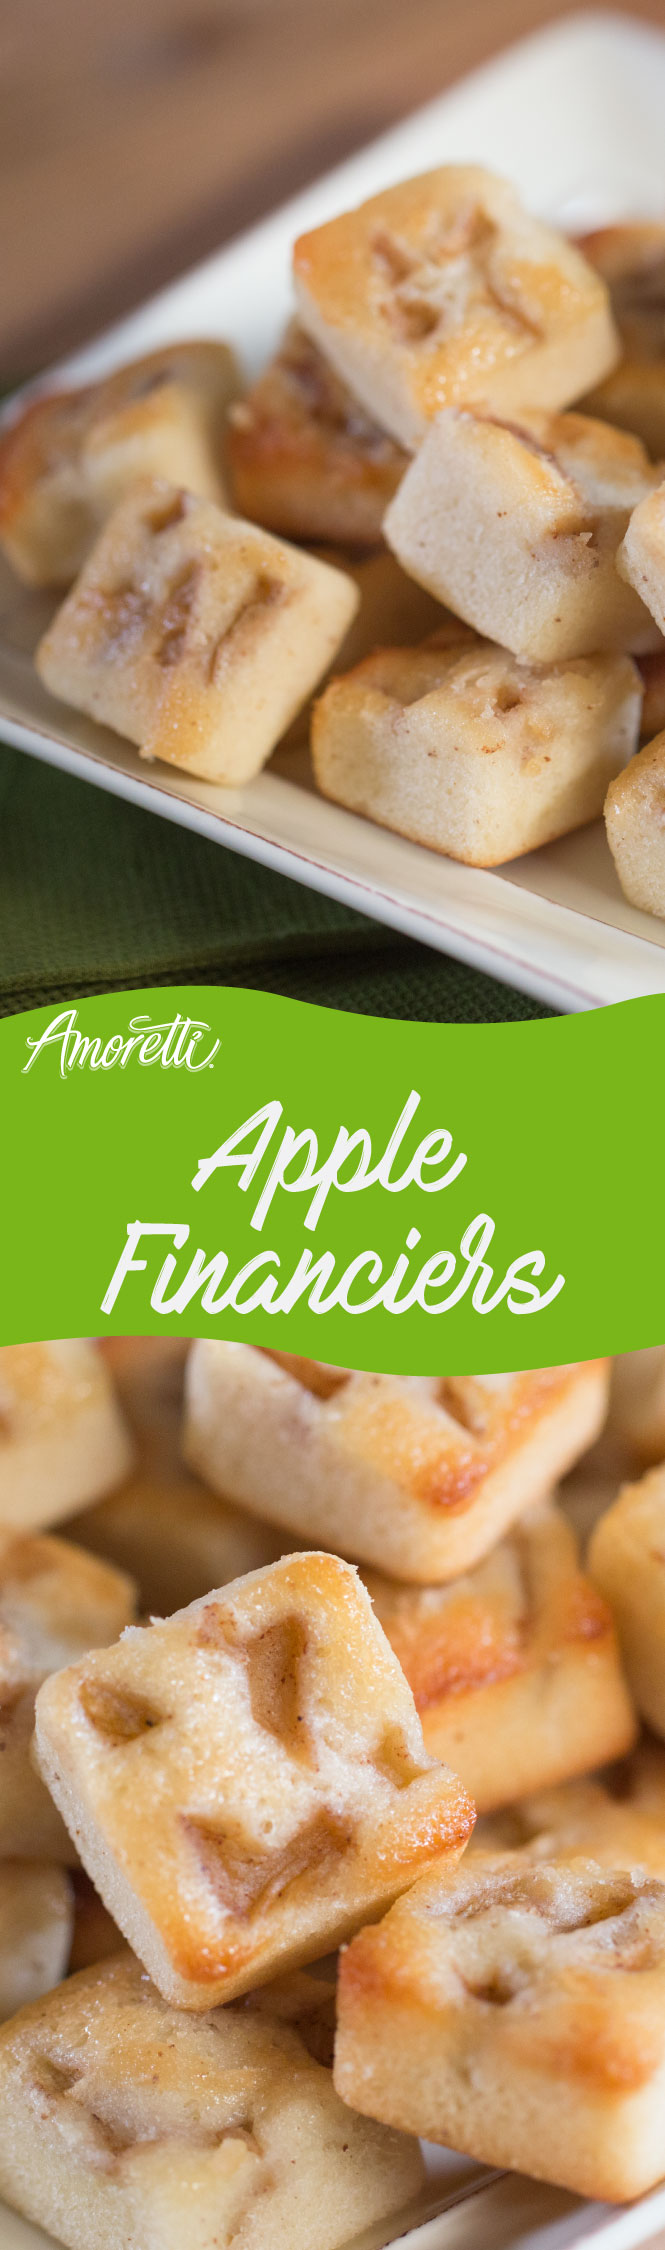 Financiers are delicious, bite-size tea cakes. Try our version featuring caramelized apples!